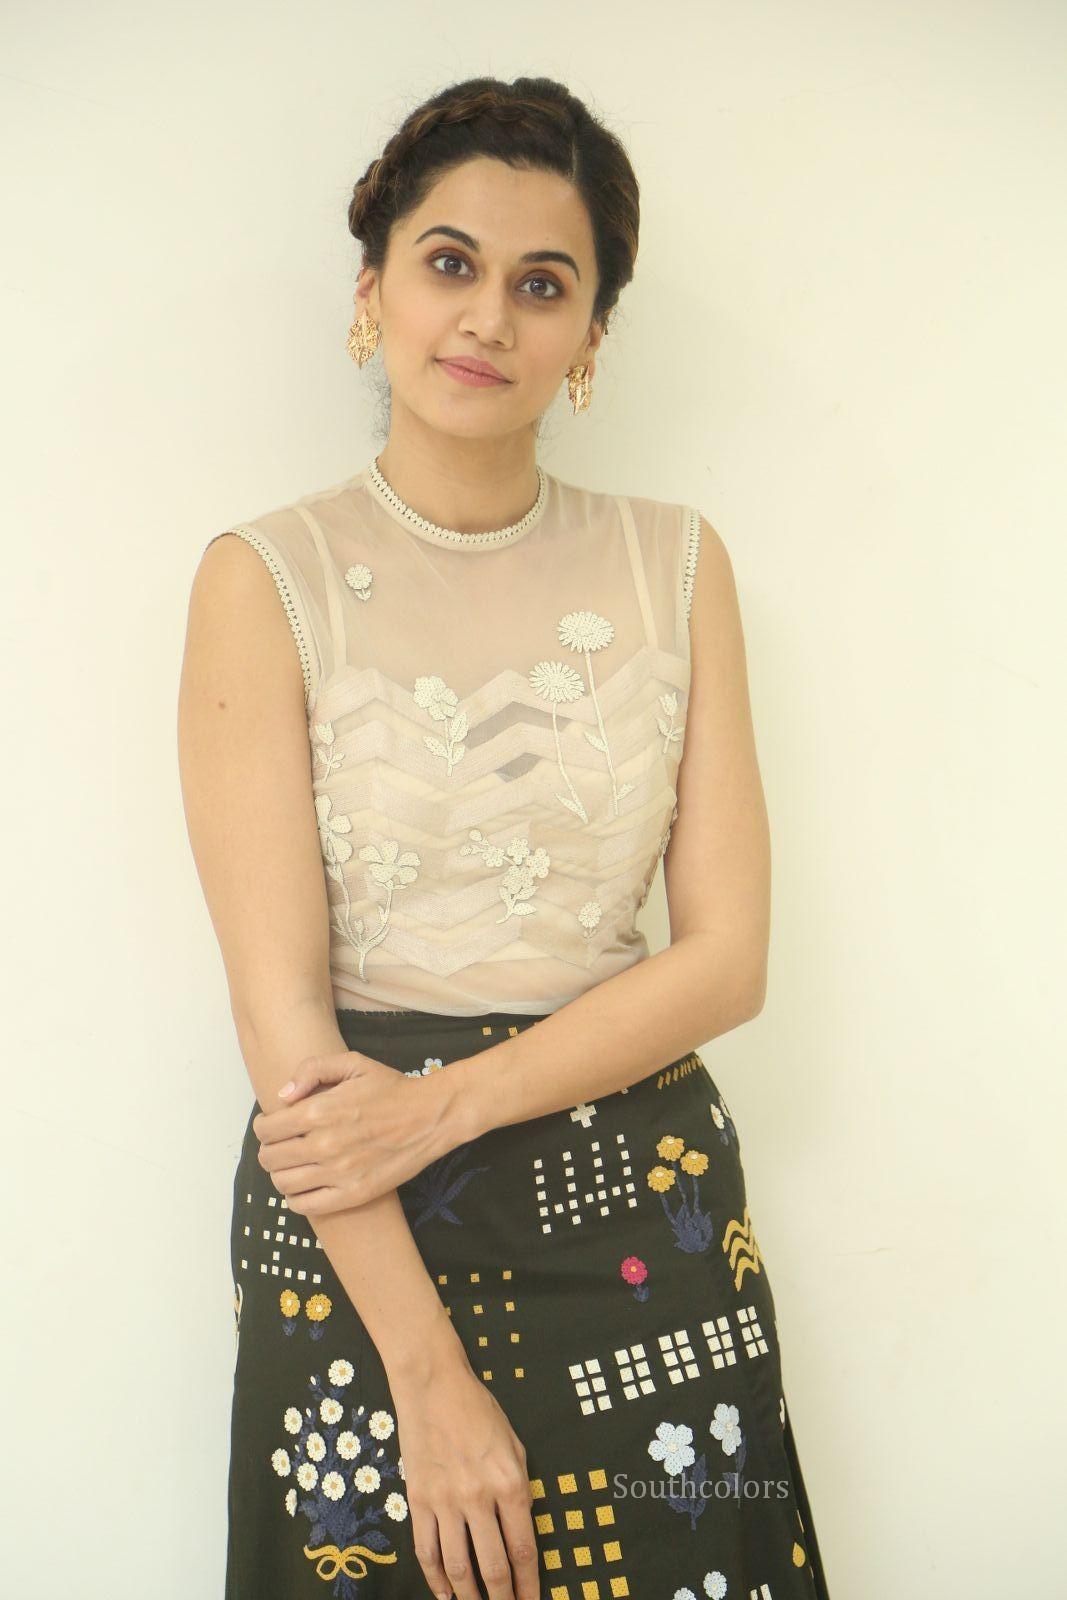 taapsee pannu stills at anando brahma trailer launch southcolors%2B%25287%2529